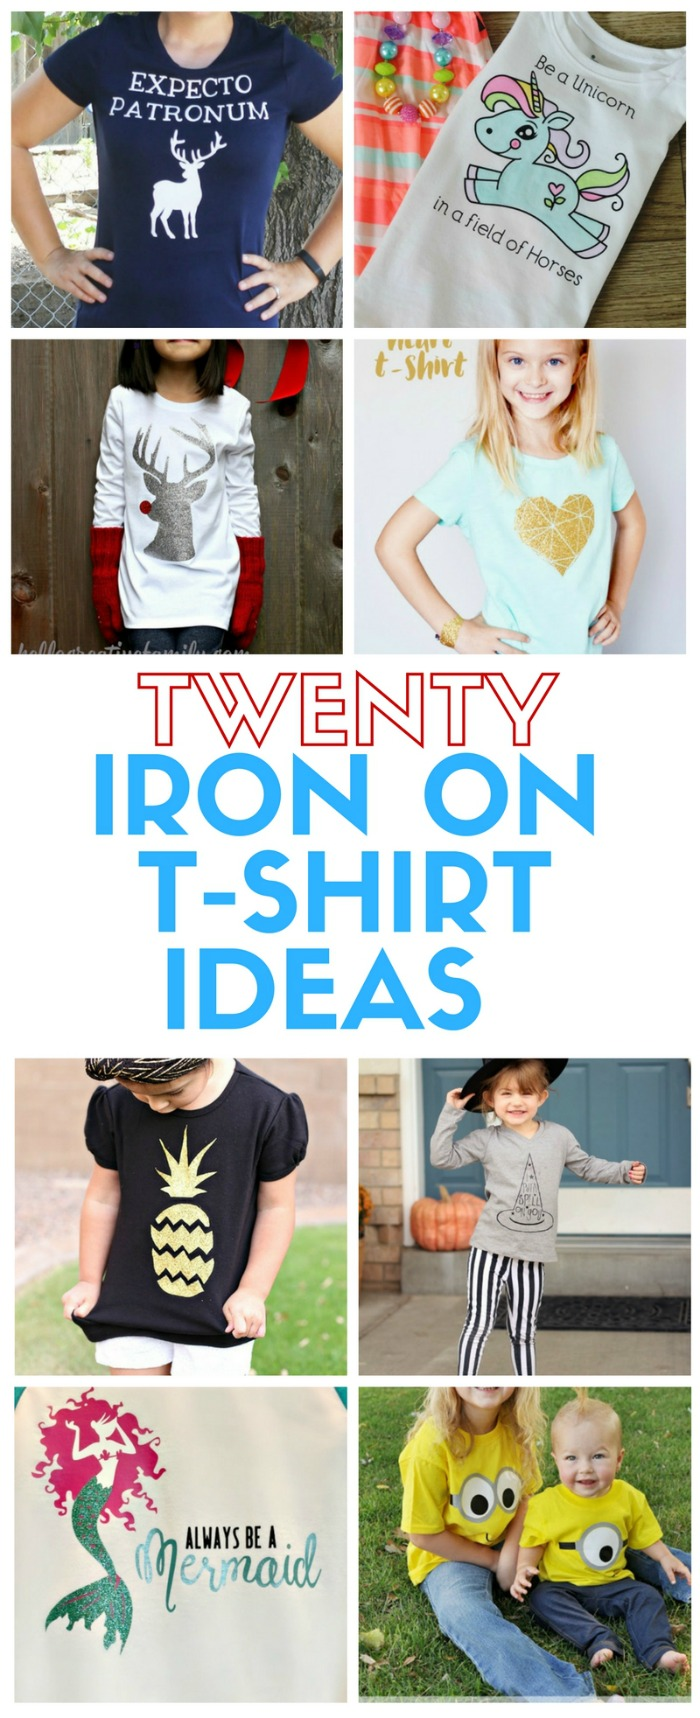 20 T Shirt Ideas Using Heat Transfer Vinyl The Crafty Blog Stalker